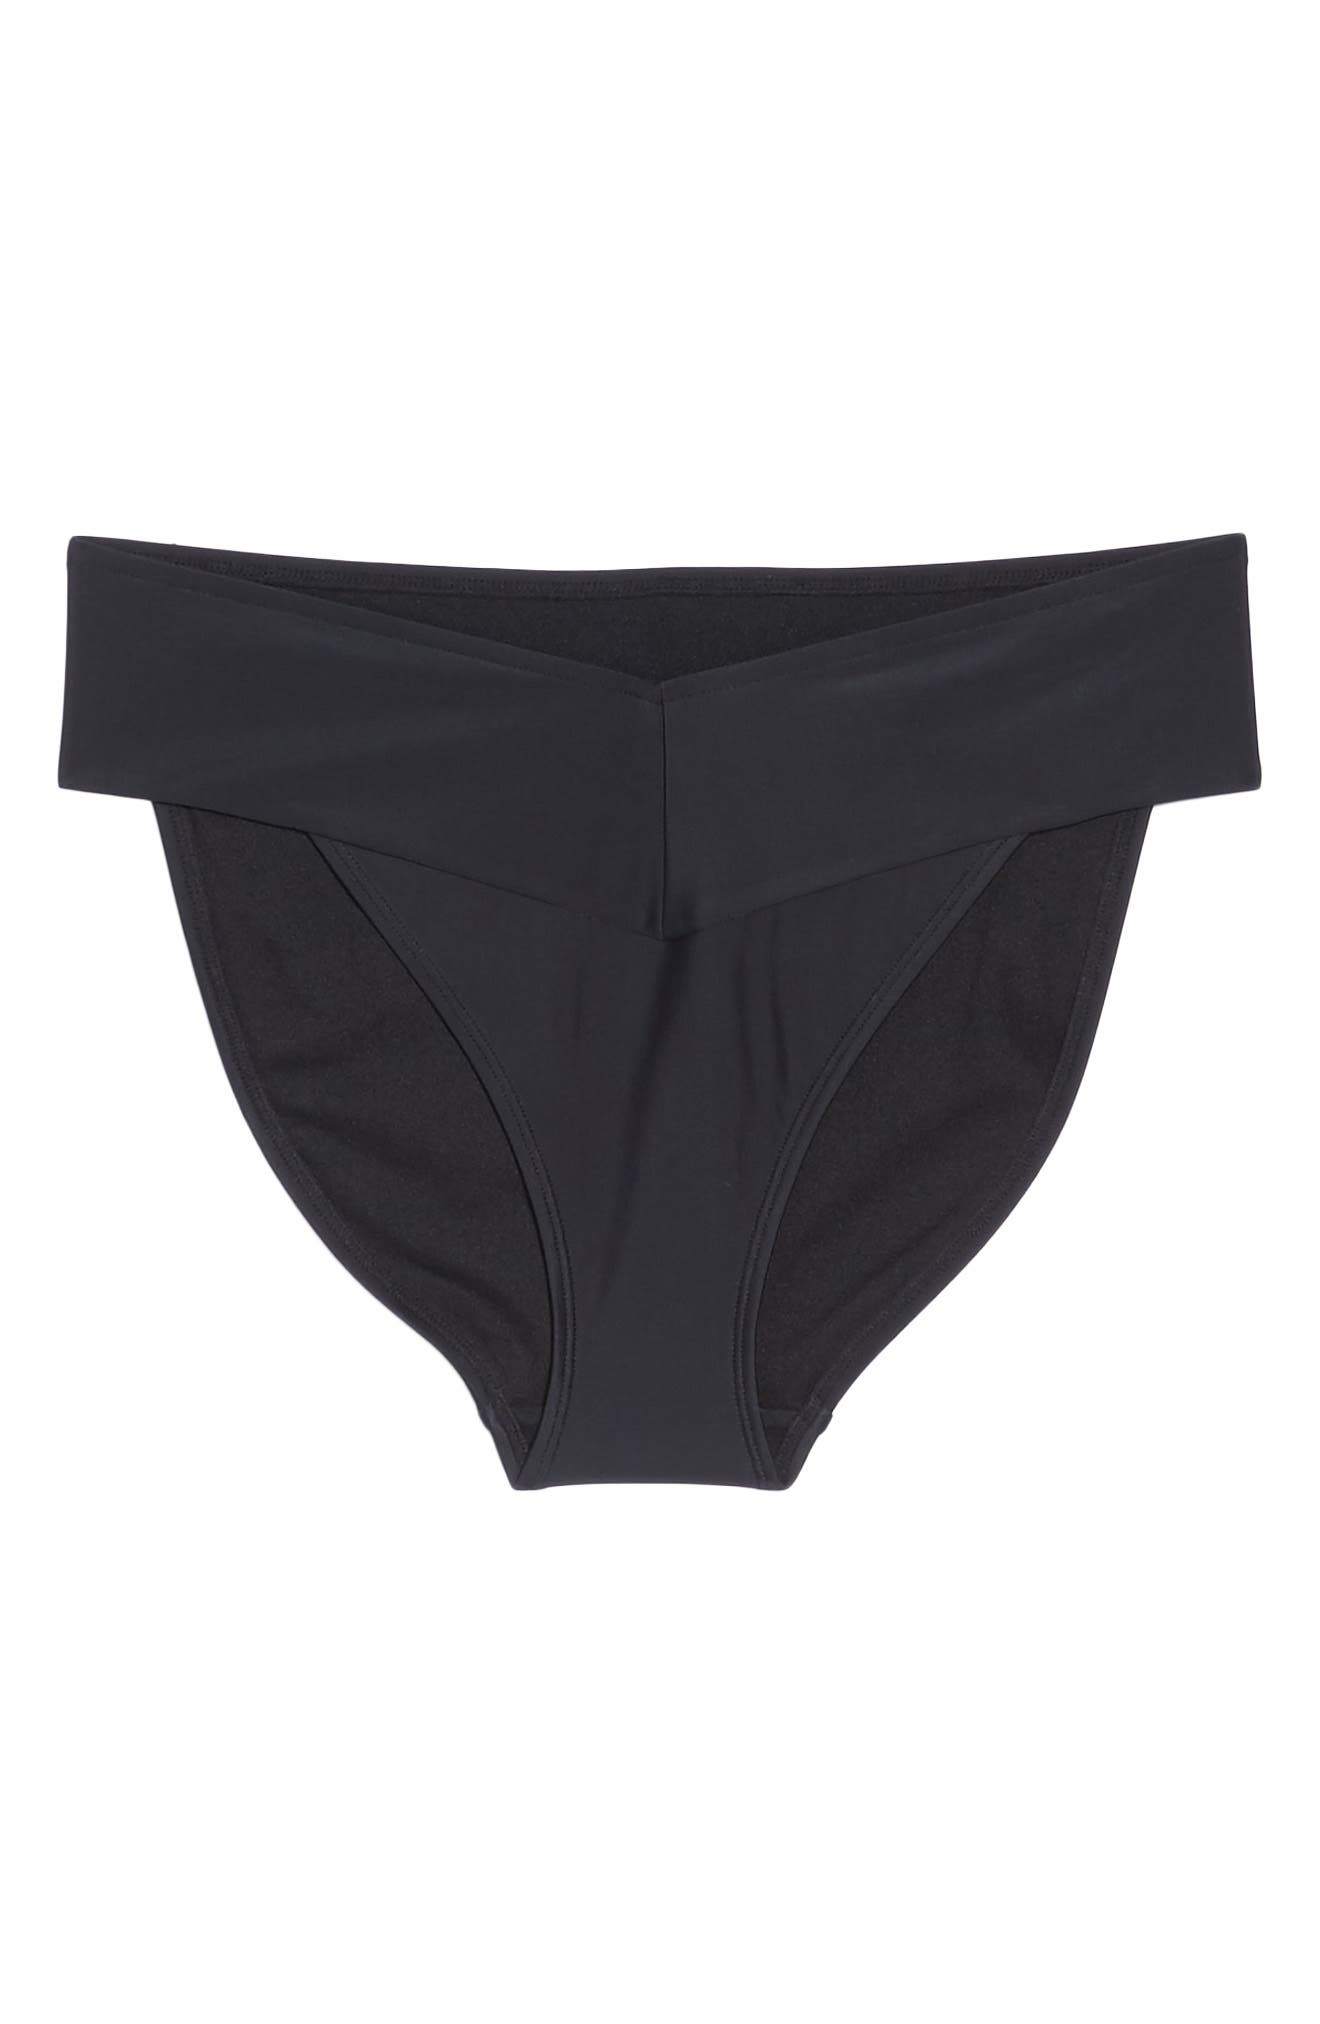 Ted Baker High Waisted Wrap Bikini Bottom,                             Alternate thumbnail 6, color,                             001